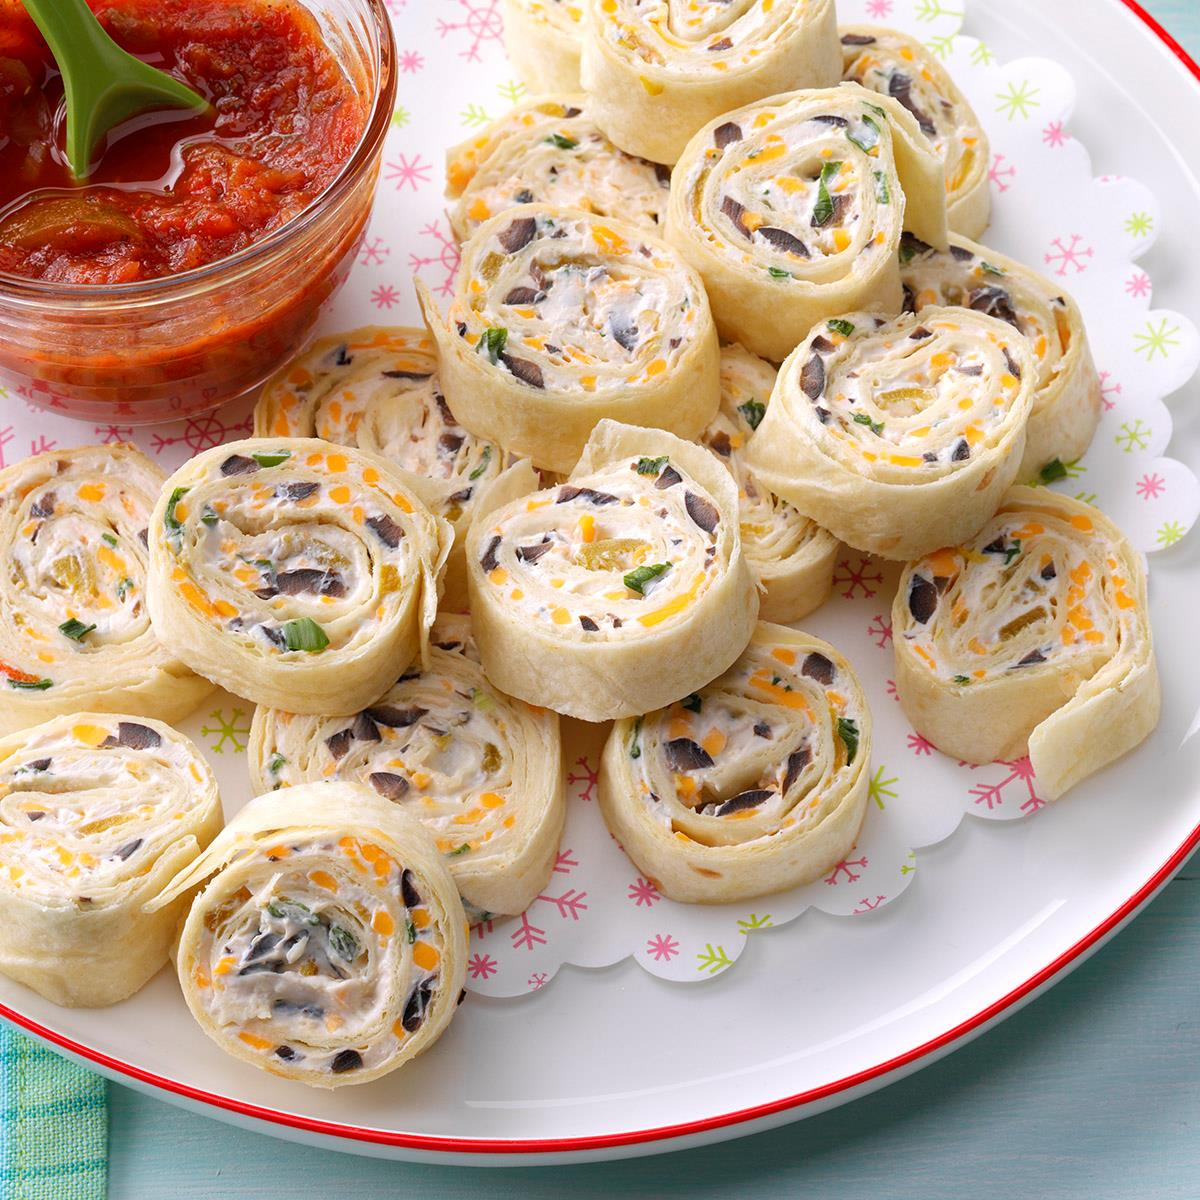 40 Easy Potluck Recipes For Your Graduation Party: Appetizer Tortilla Pinwheels Recipe